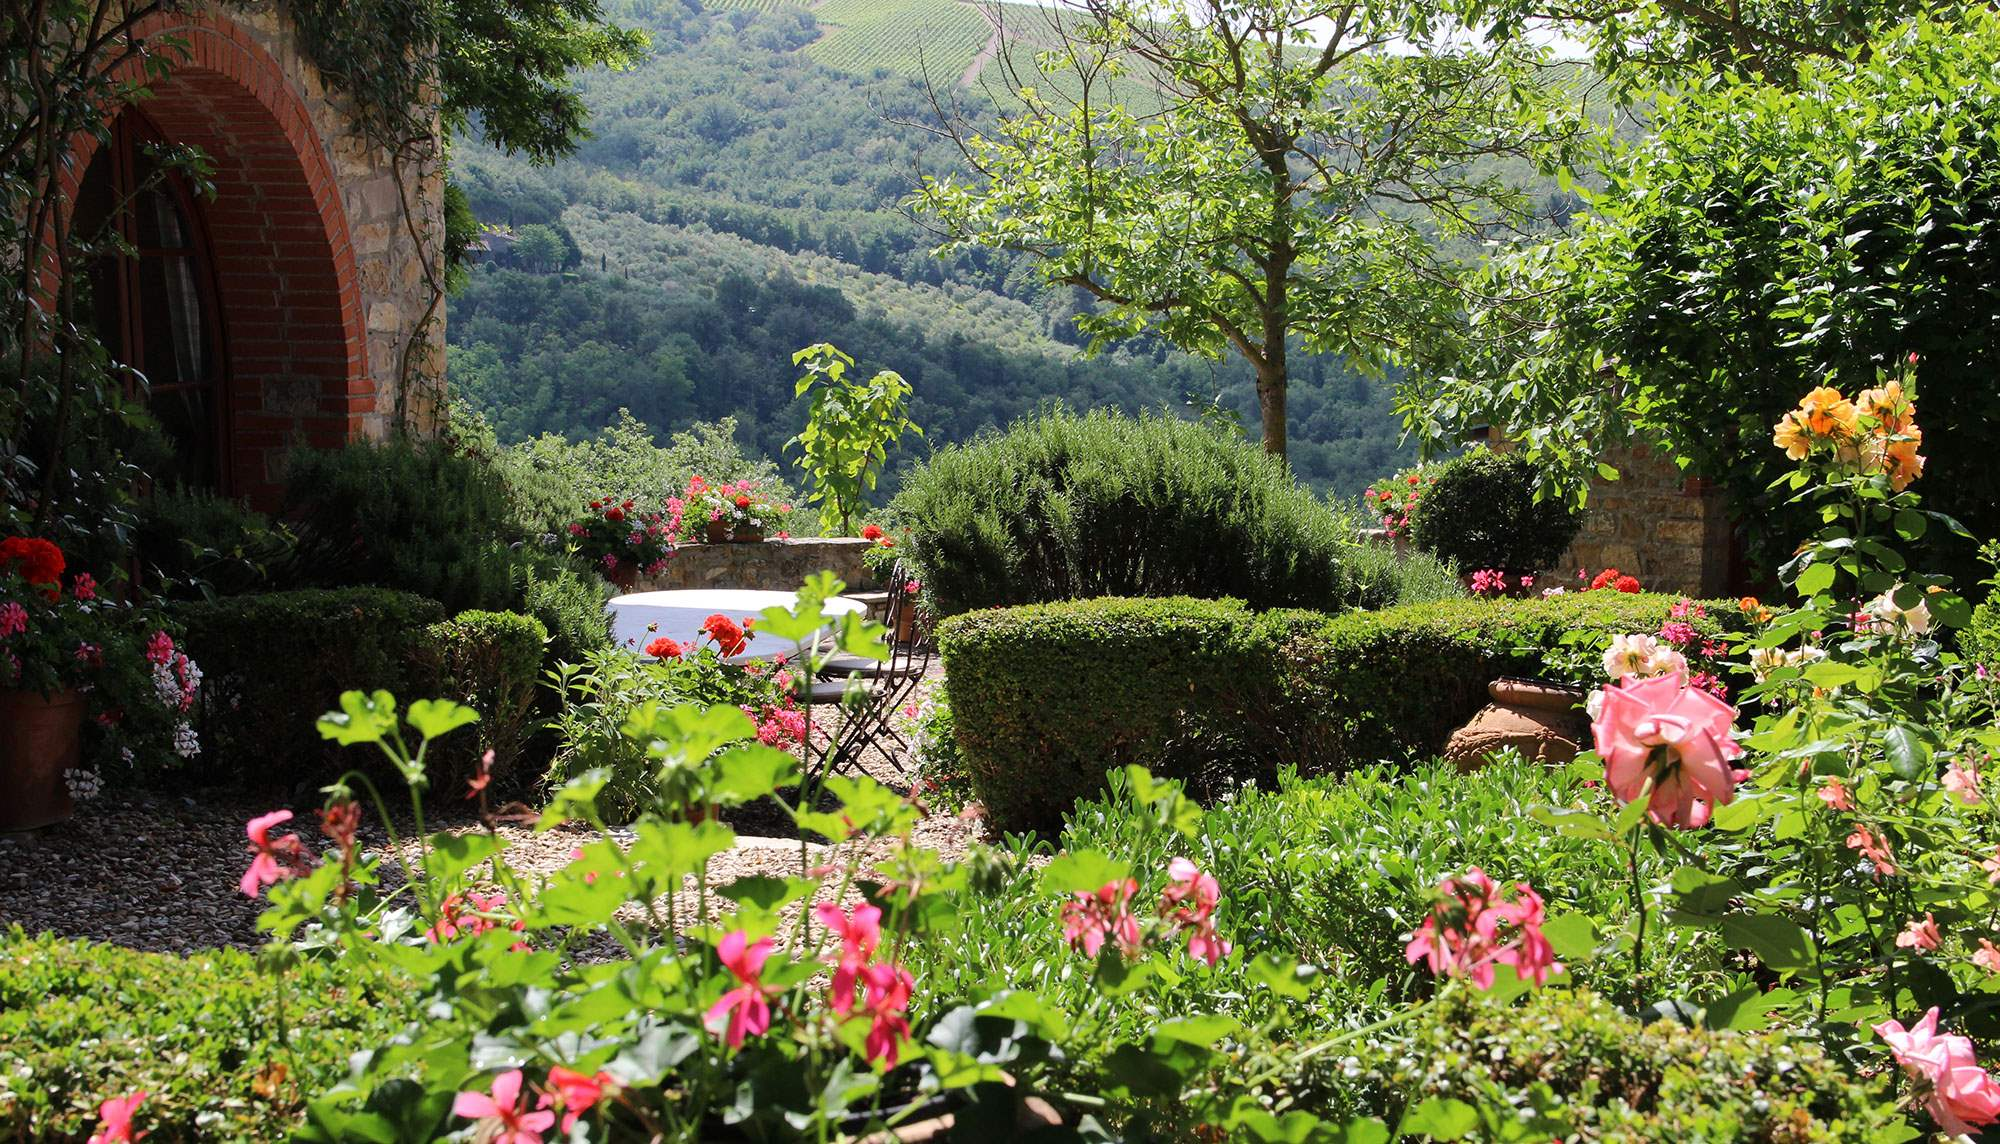 Villa Giacinto, 6 Bedroom rate, 6 bedroom villa in Chianti & Countryside, Tuscany Photo #30